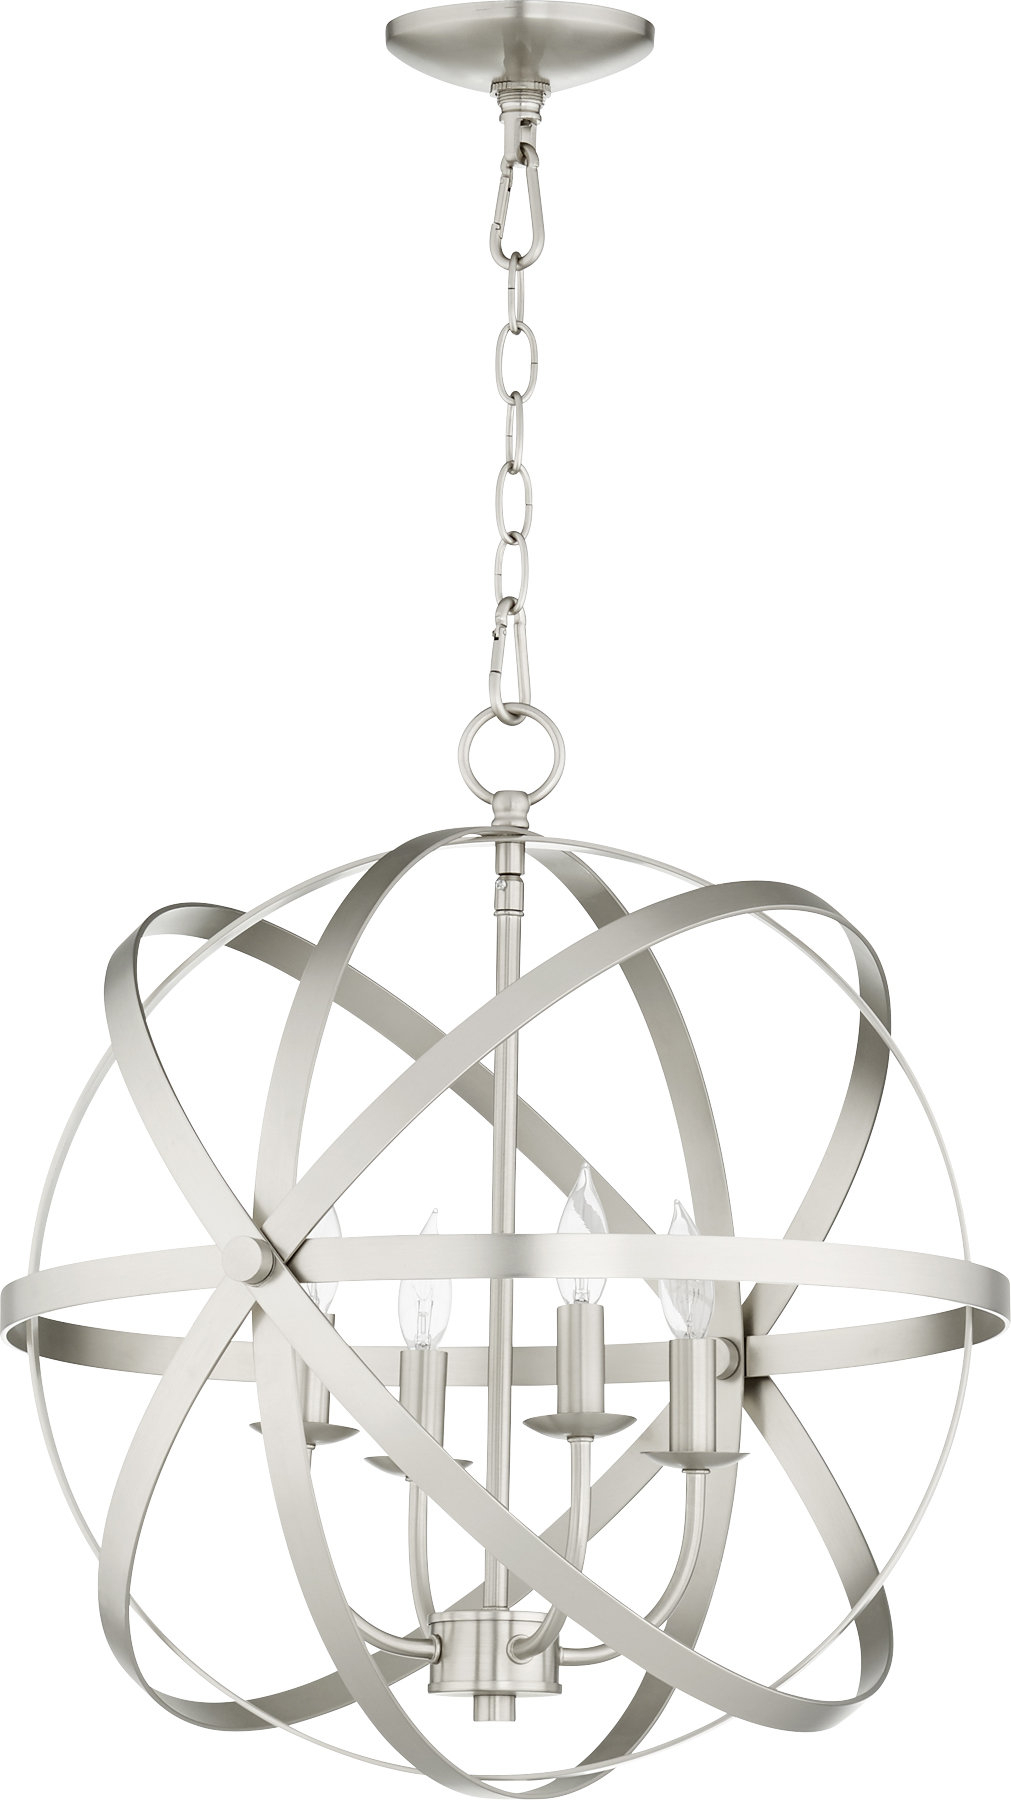 Dian 4-Light Globe Chandelier regarding Joon 6-Light Globe Chandeliers (Image 4 of 30)